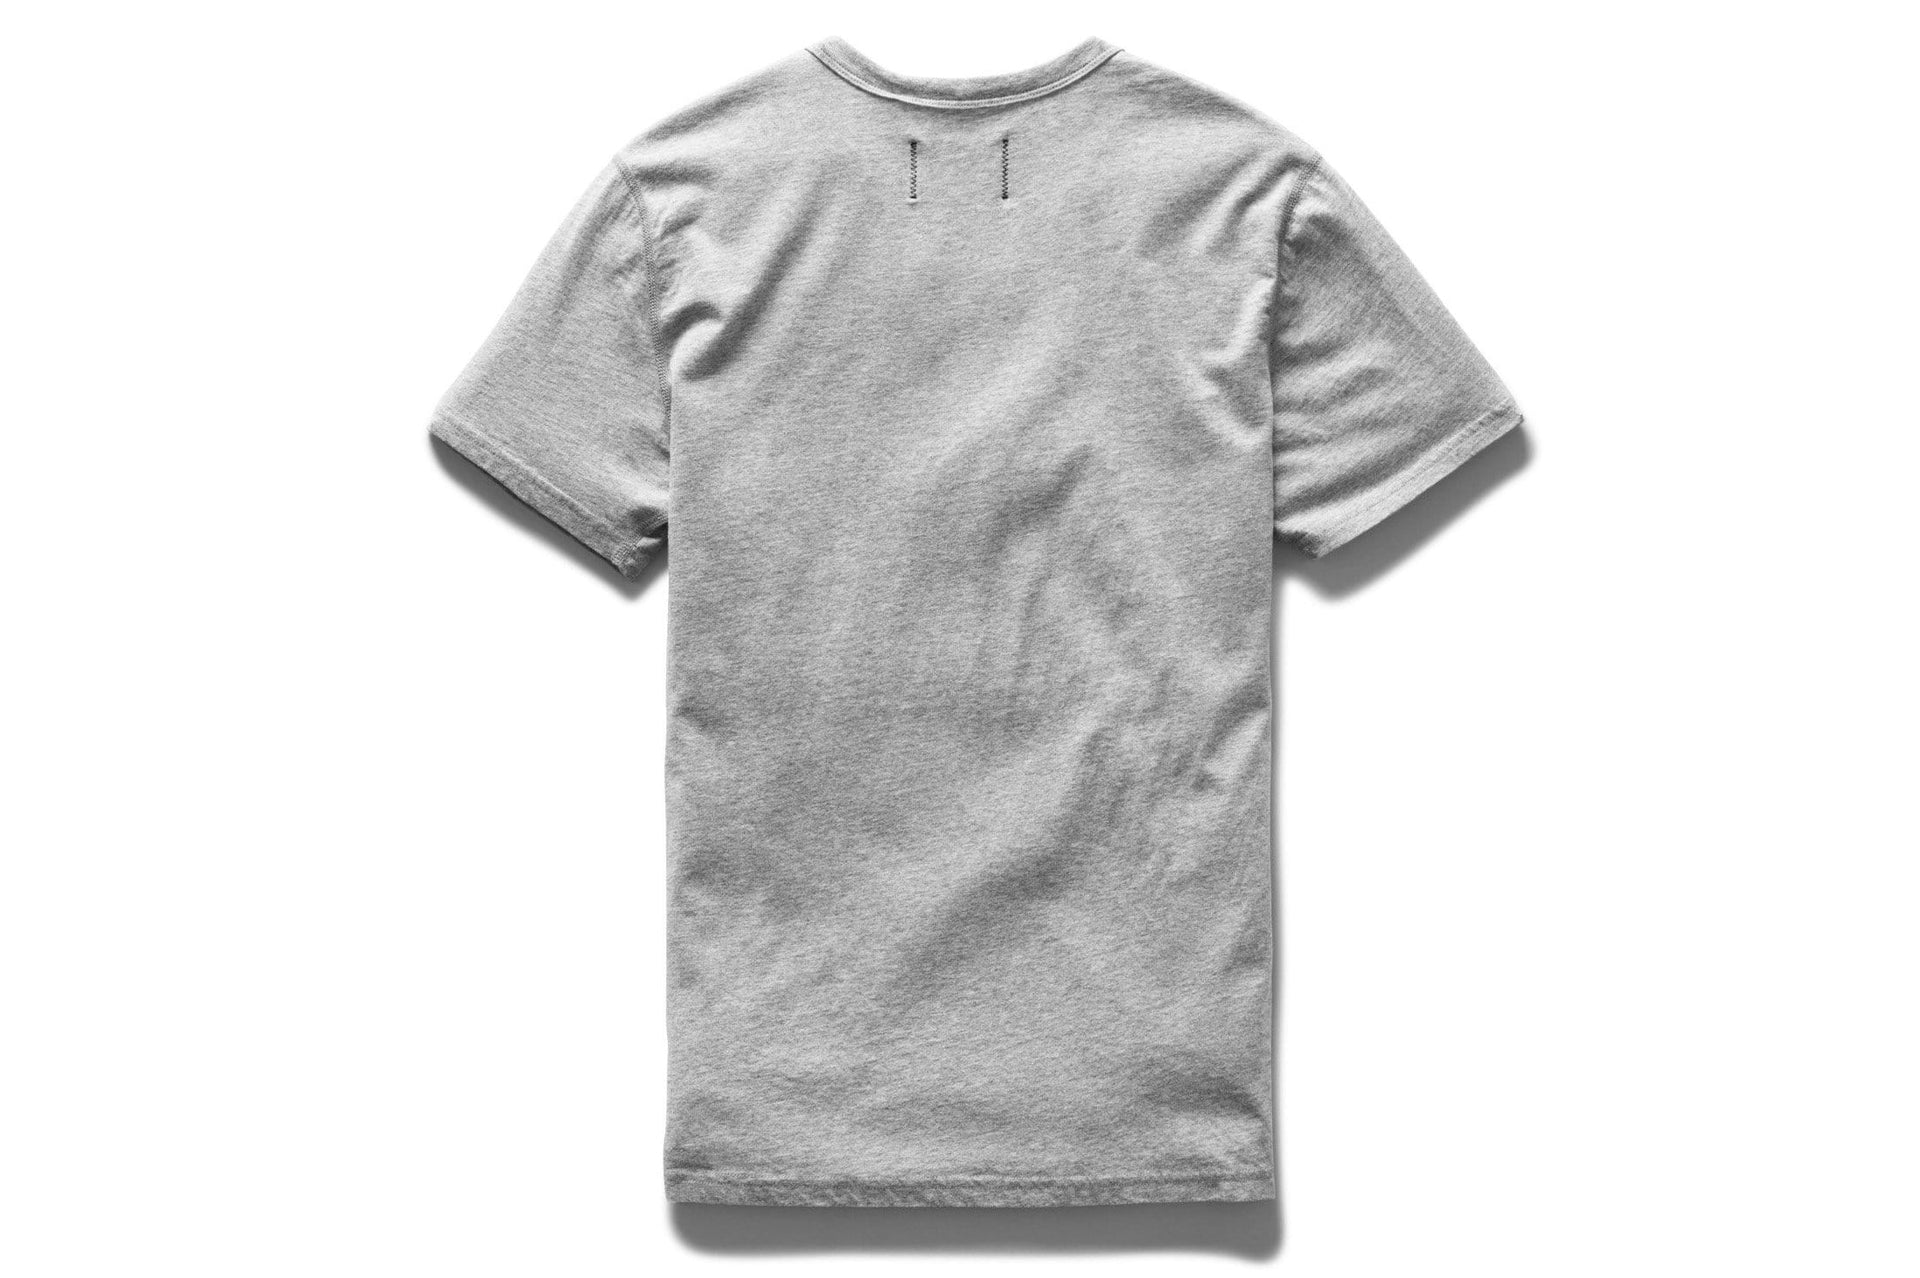 KNIT COTTON JERSEY SHORT SLEEVE CREWNECK-RC-1028-7 MENS SOFTGOODS REIGNING CHAMP